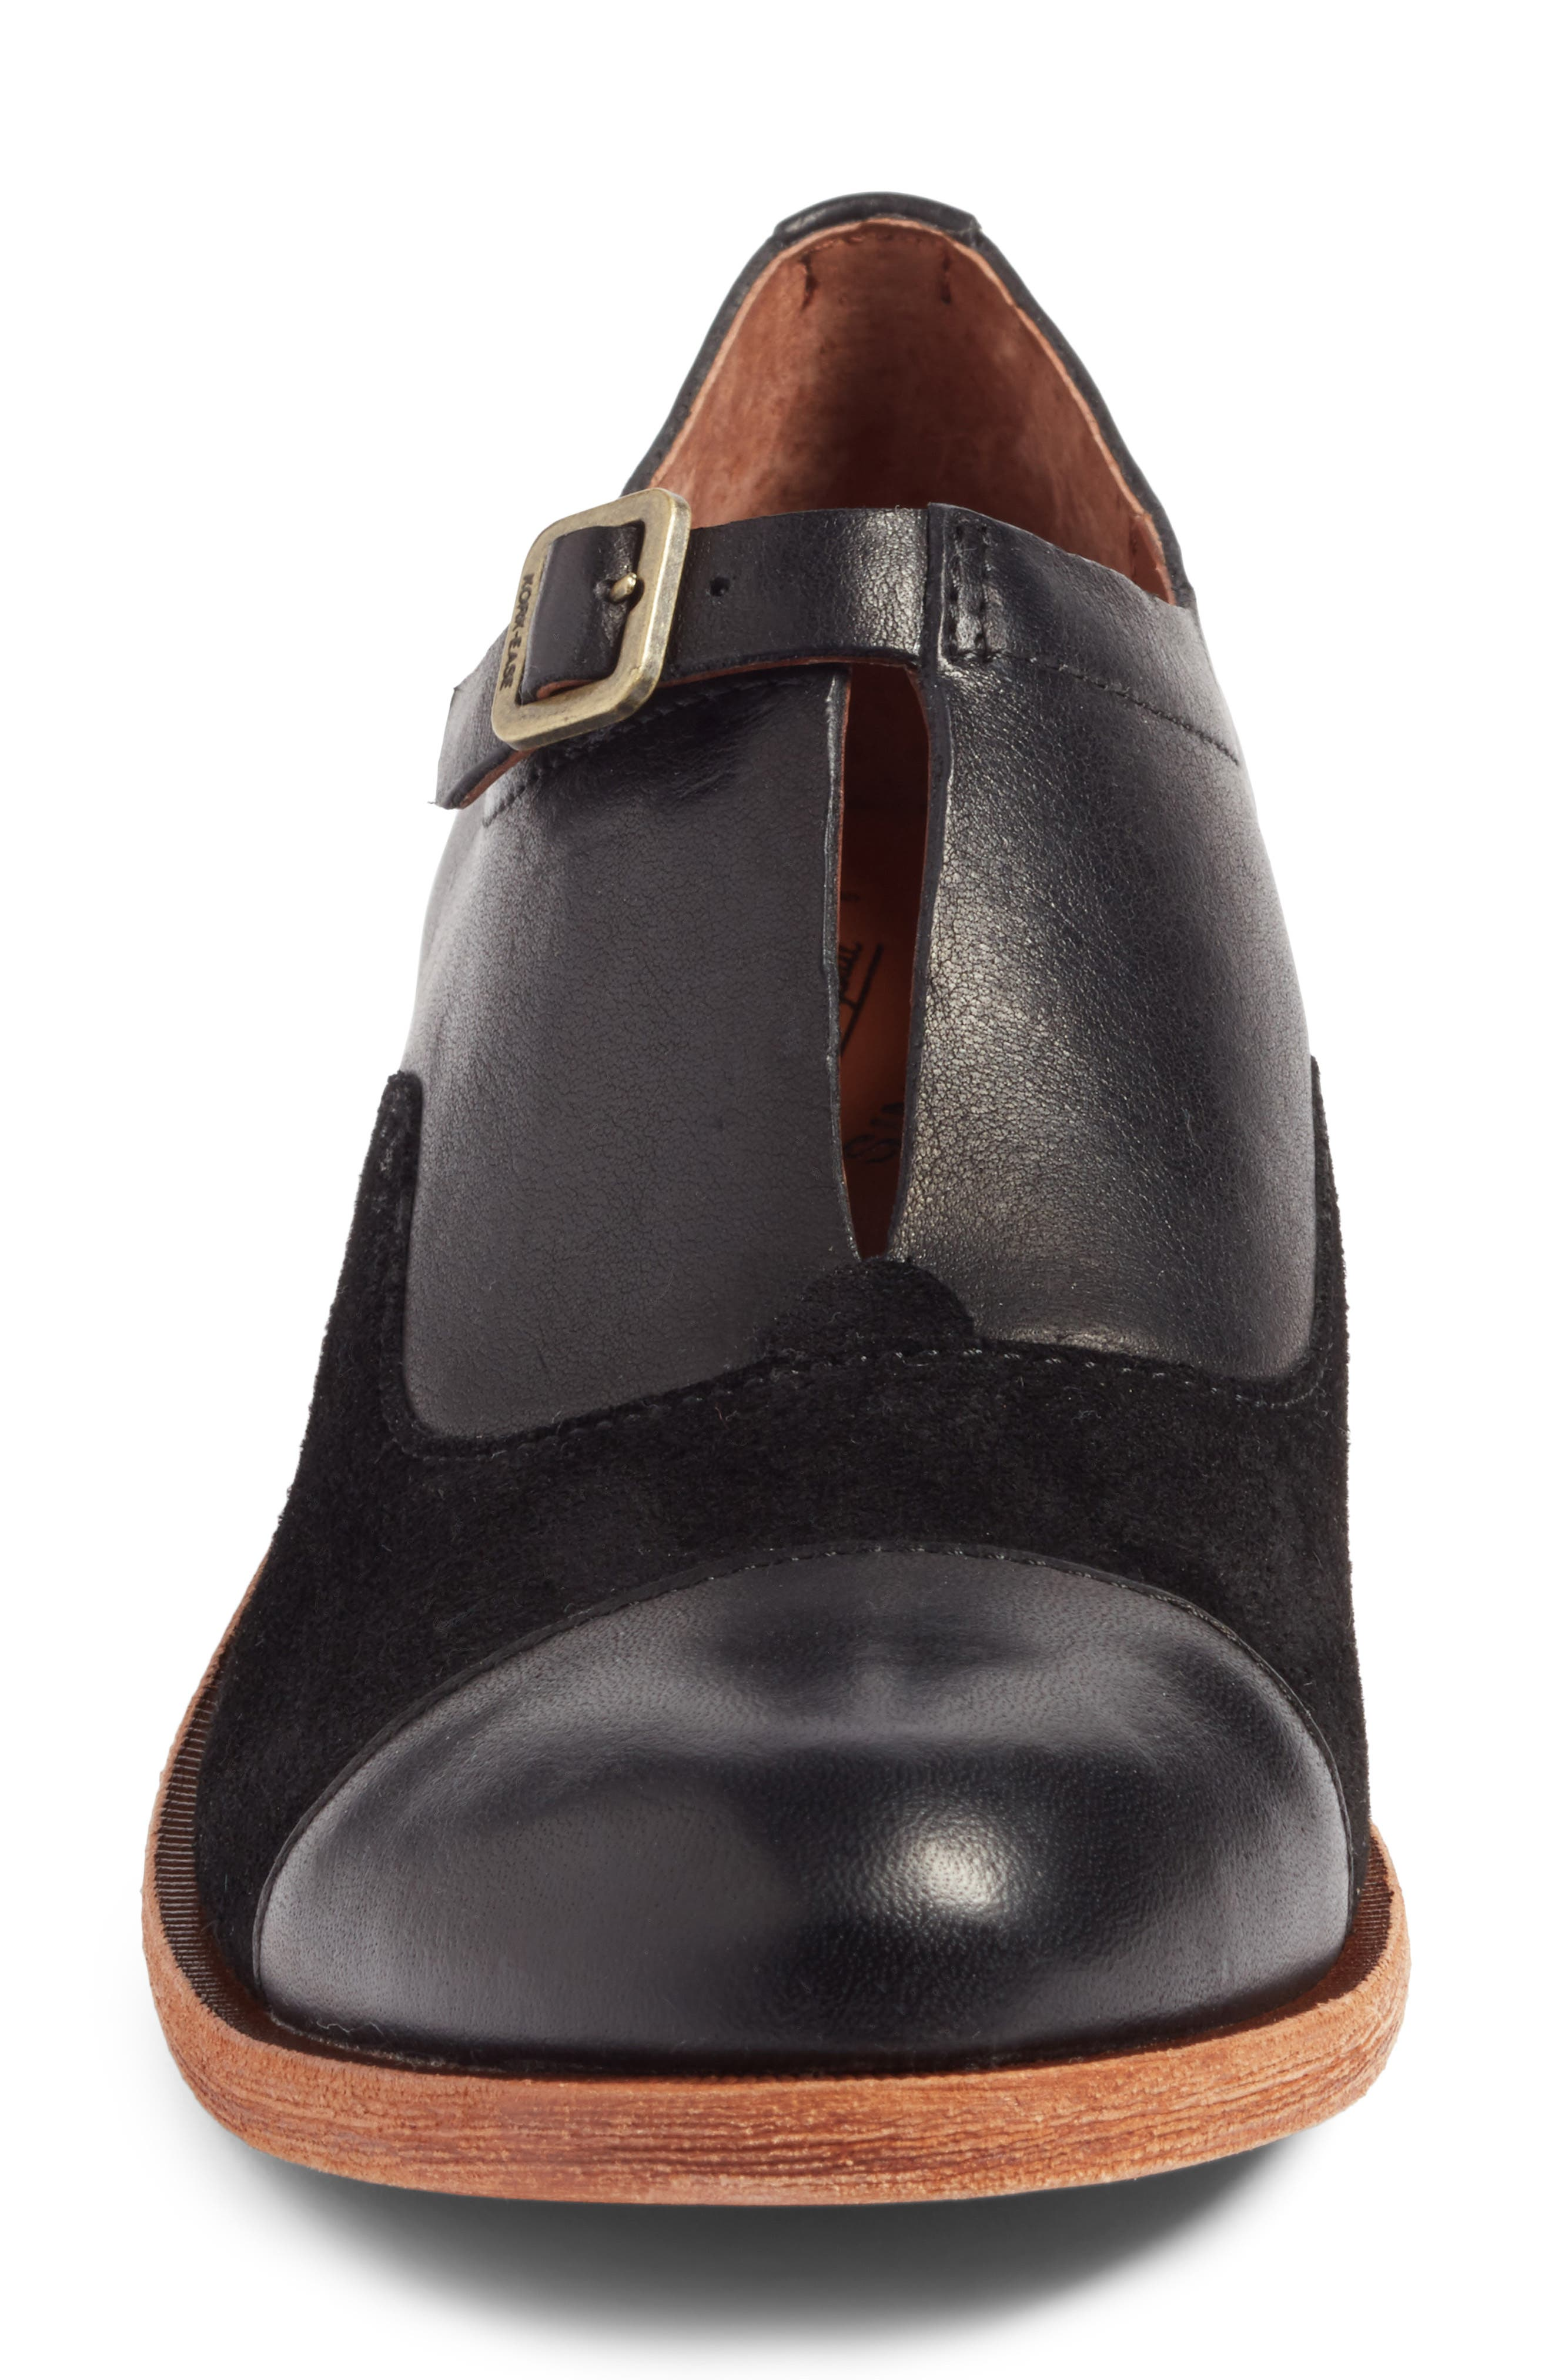 'Niseda' Oxford,                             Alternate thumbnail 6, color,                             Black Leather Suede Combo